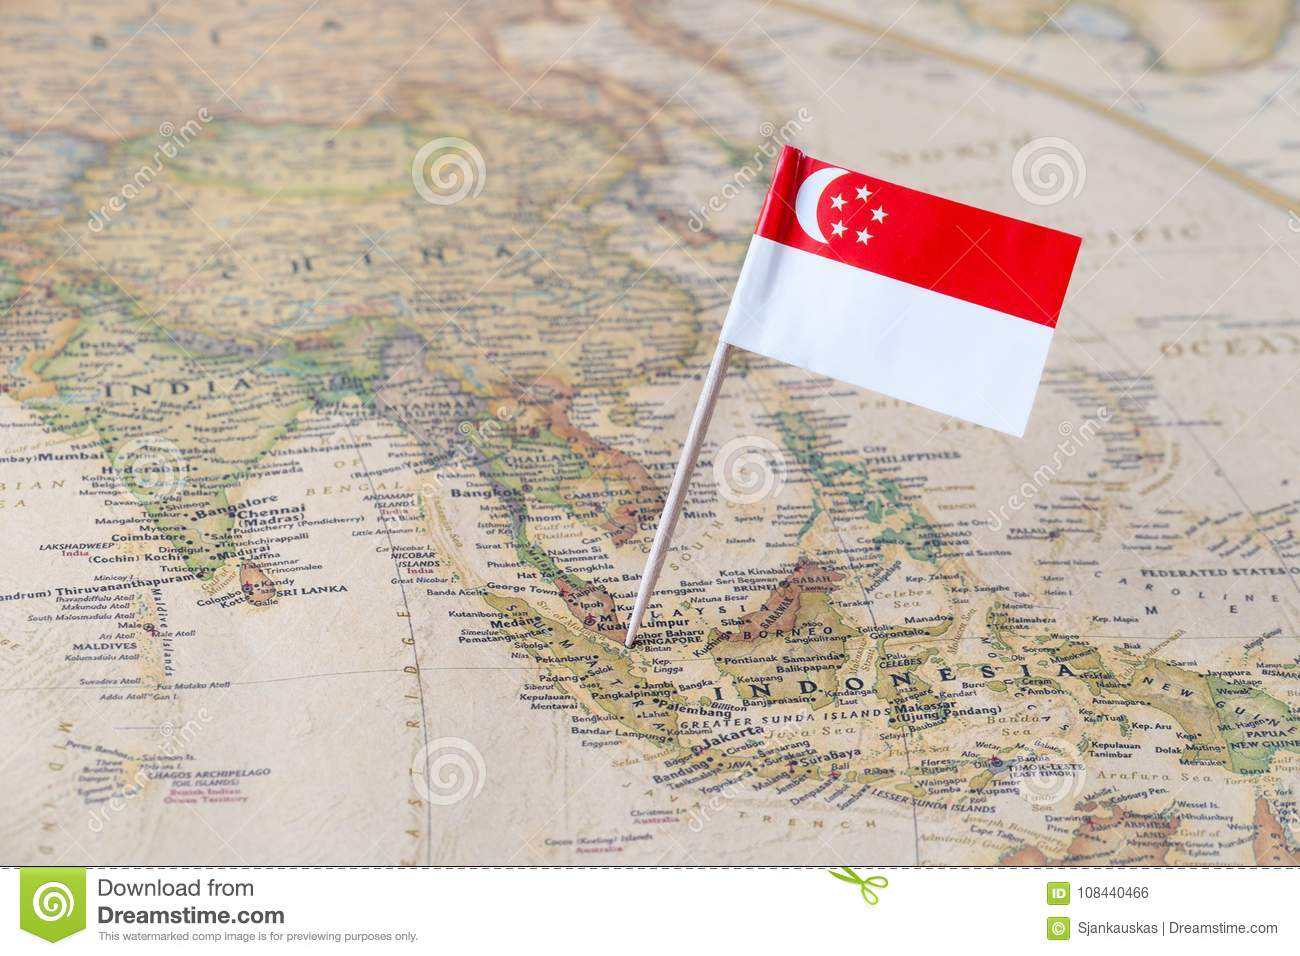 Singapore Flag Pin On A World Map Stock Photo Image Of Democratic